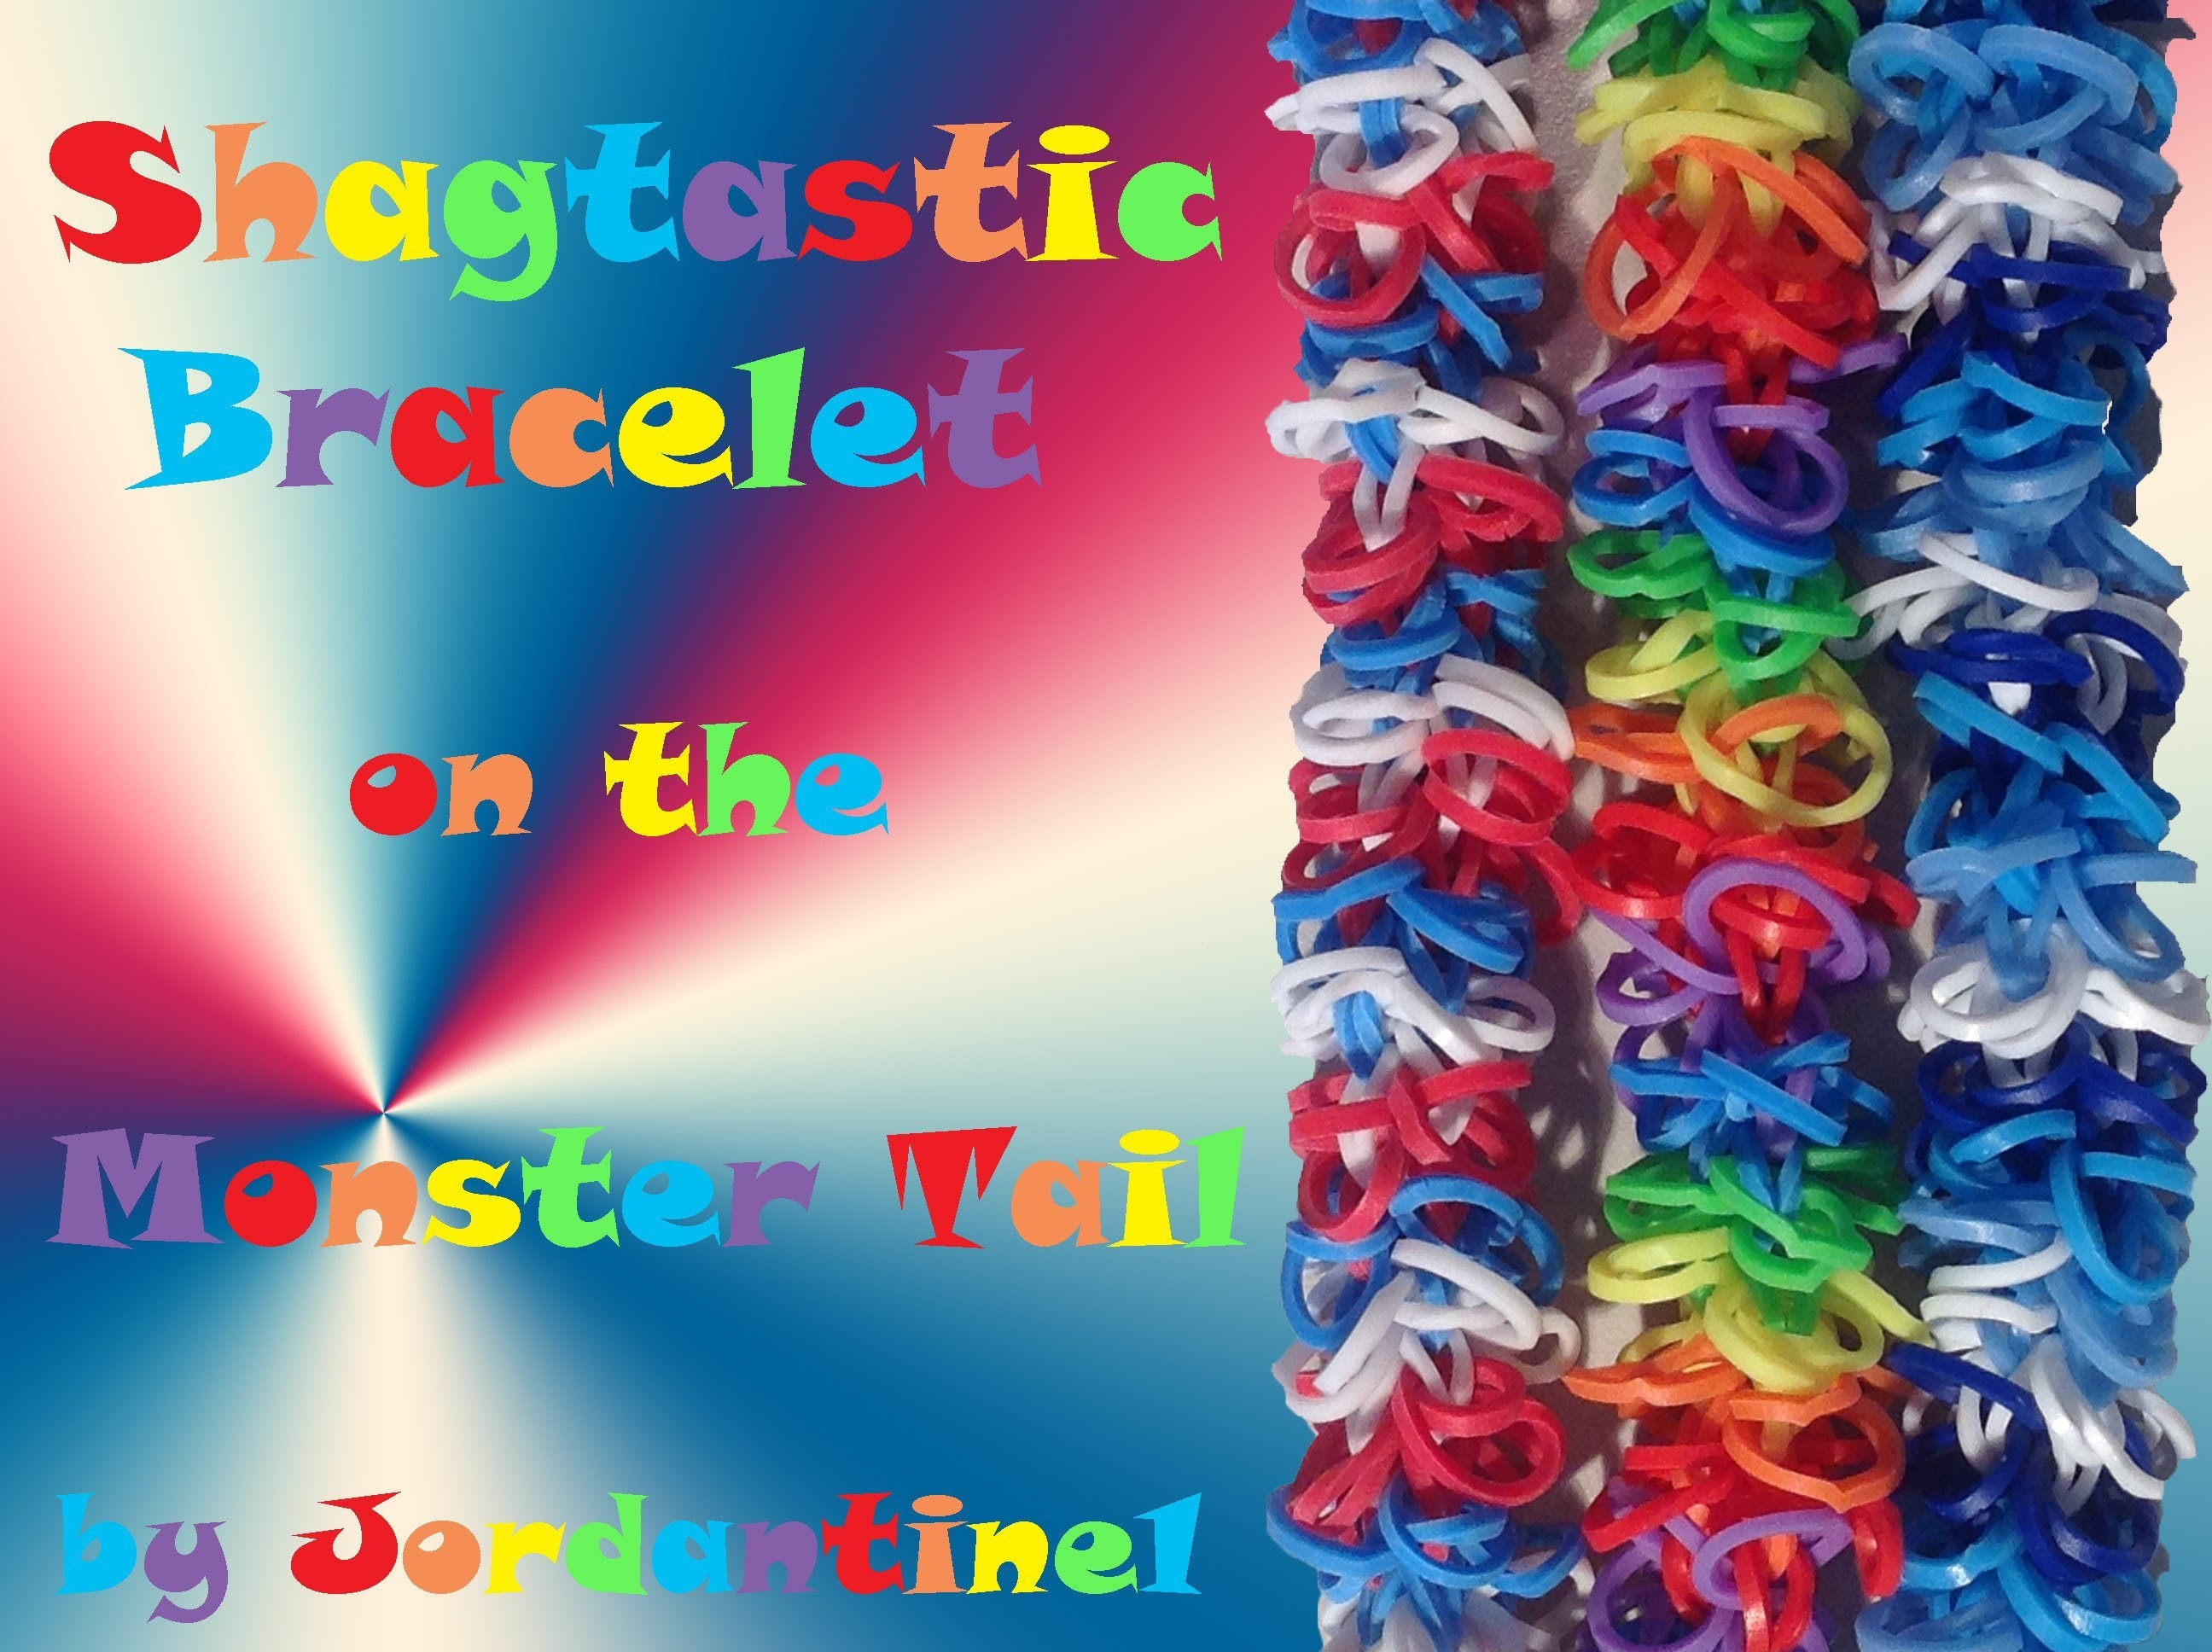 Shagtastic Bracelet made on the Monster Tail - Rainbow Loom, Finger Loom